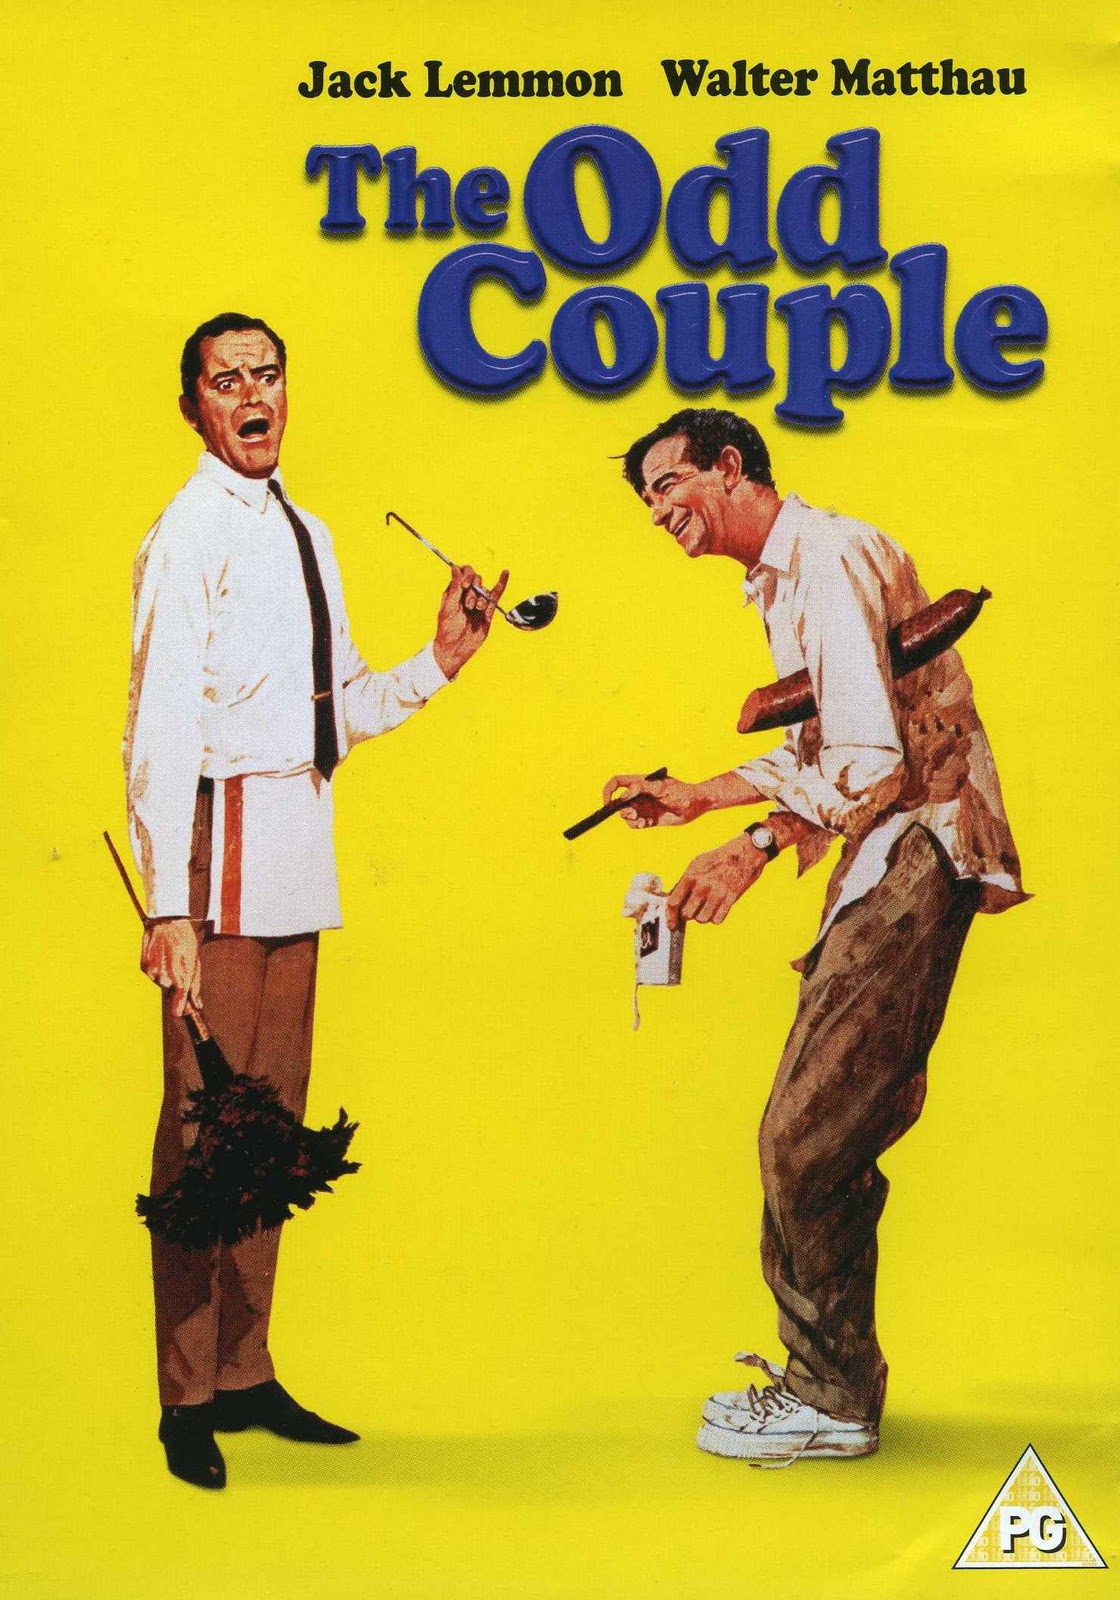 Image Result For Full Comedy Movies